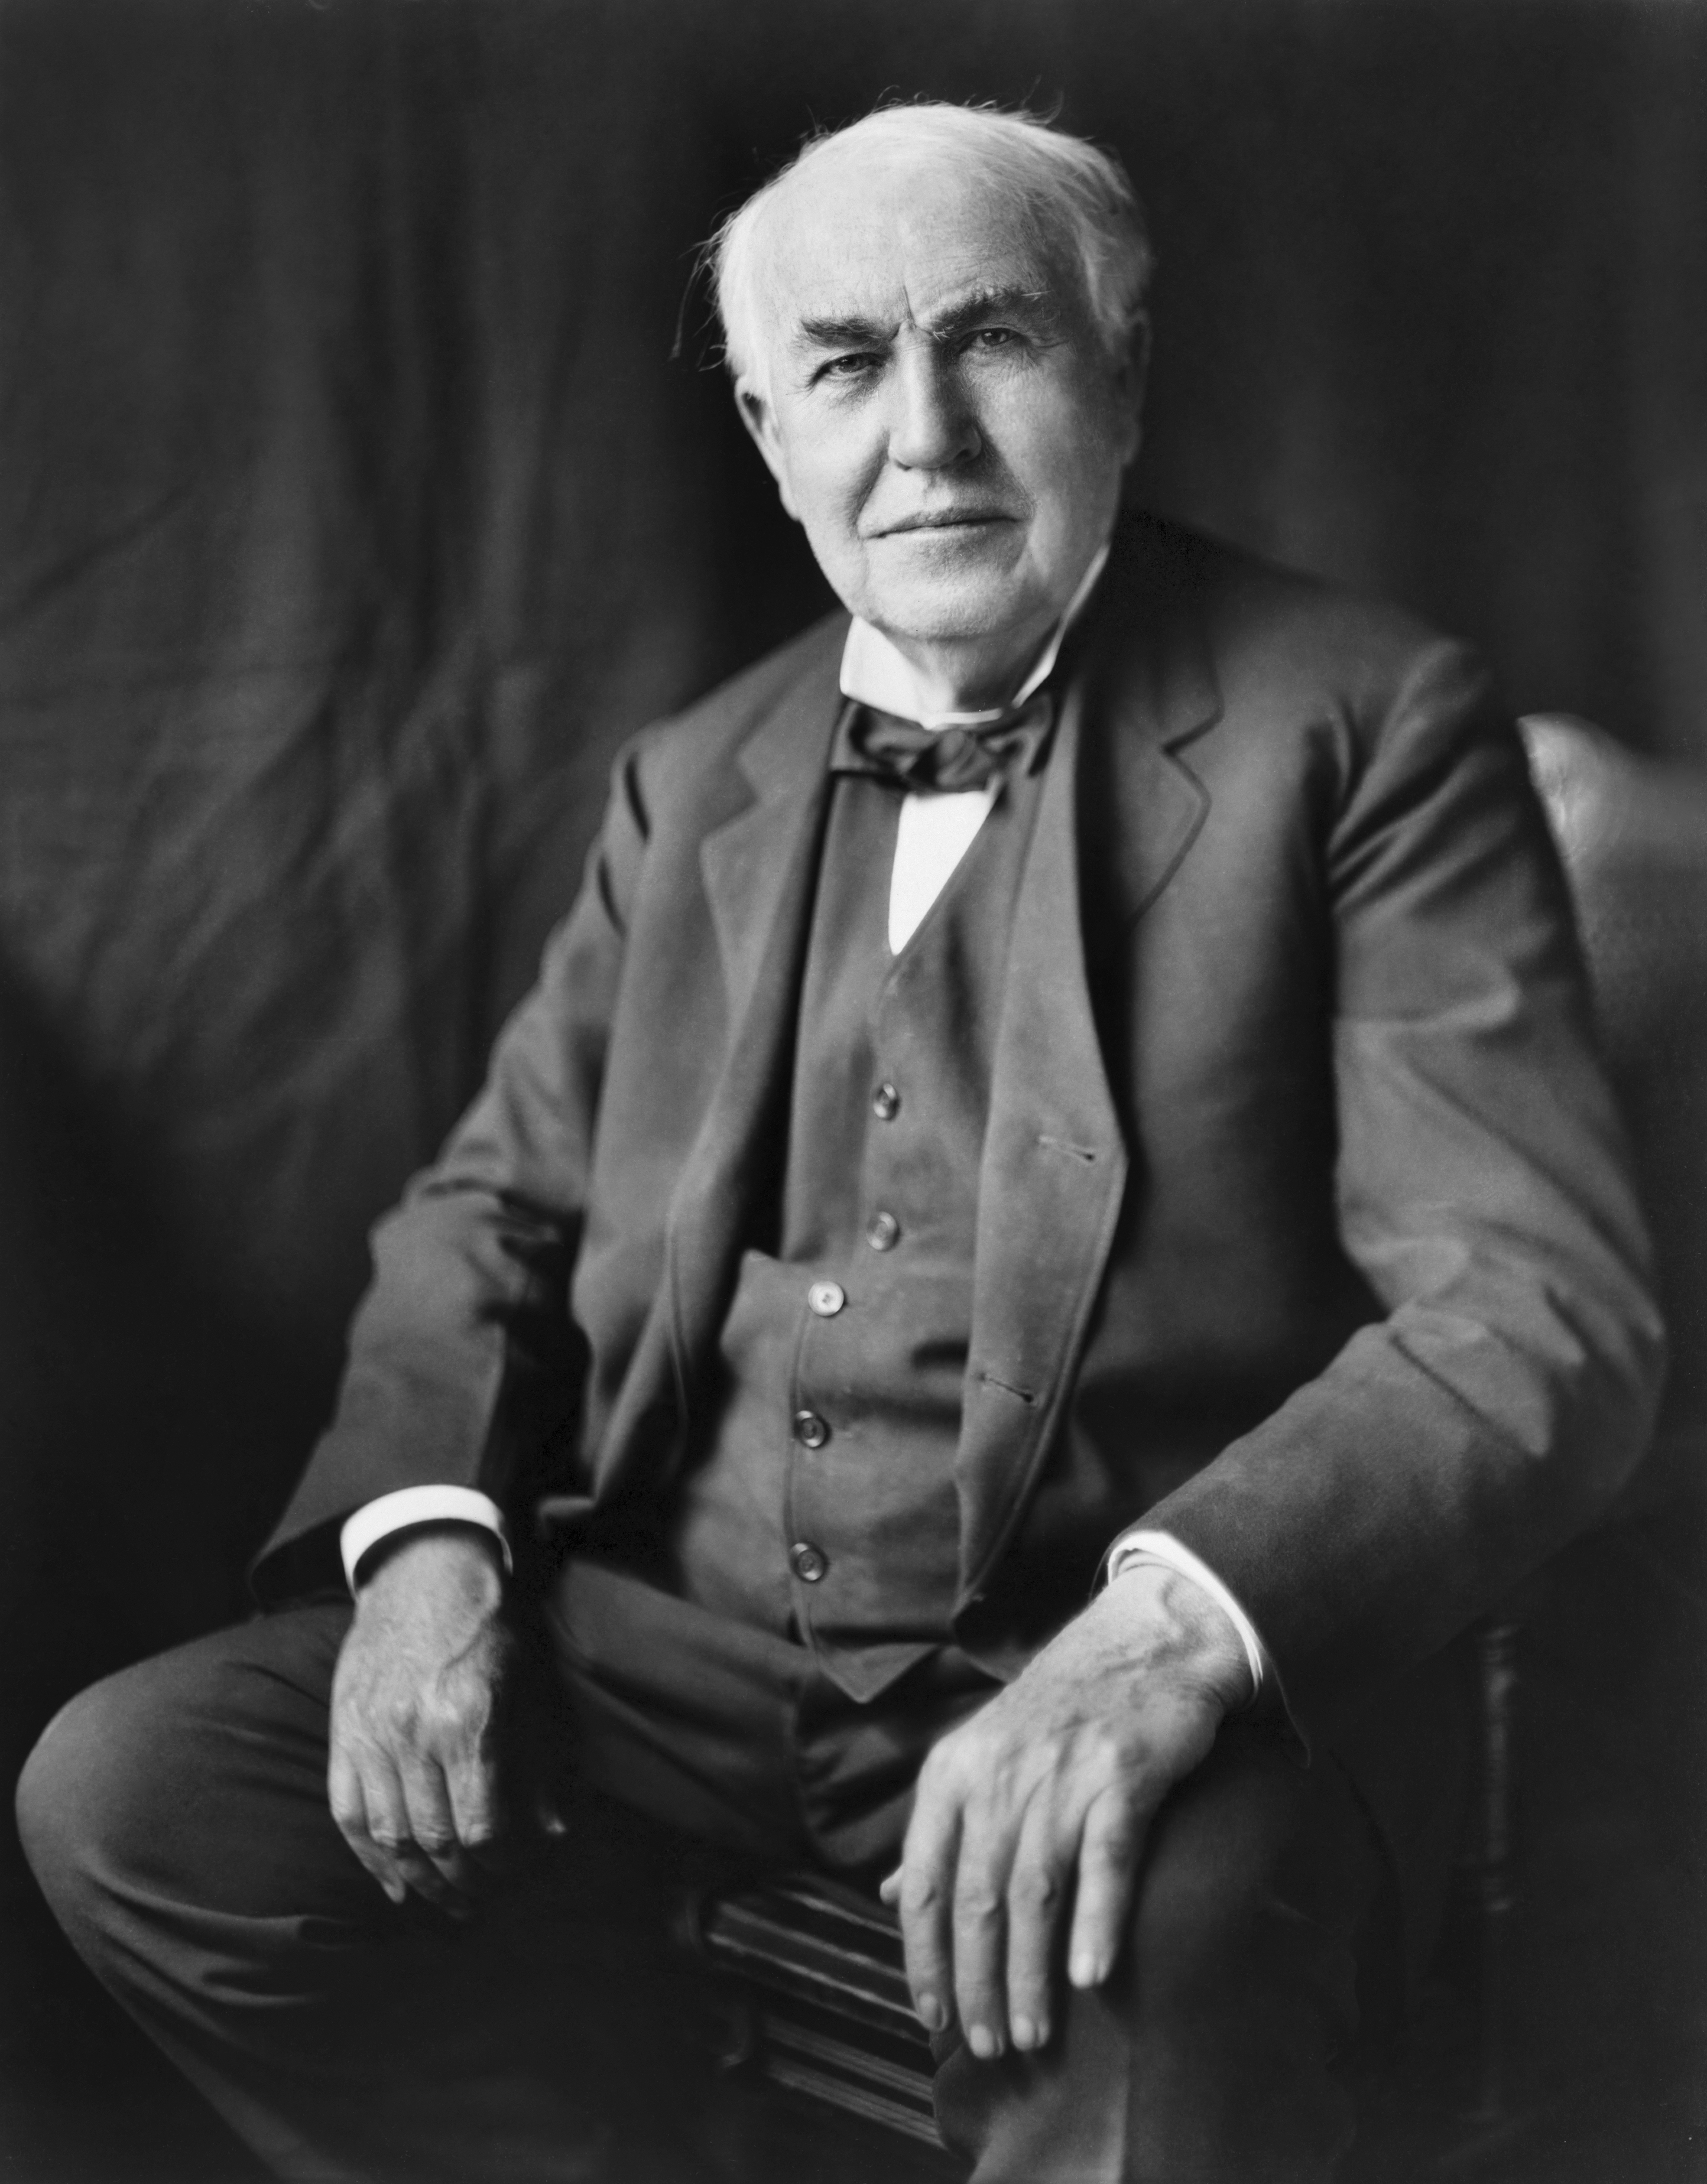 Thomas Alva Edison, three-quarter length portrait, seated, facing front, circa 1922. Photo taken by Louis Bachrach, Bachrach Studios, restored by Michel Vuijlsteke (dust and scratches removed, global and local histogram changes; some local sharpening). This image is available from the United States Library of Congress's Prints and Photographs division under the digital ID cph.3c05139.